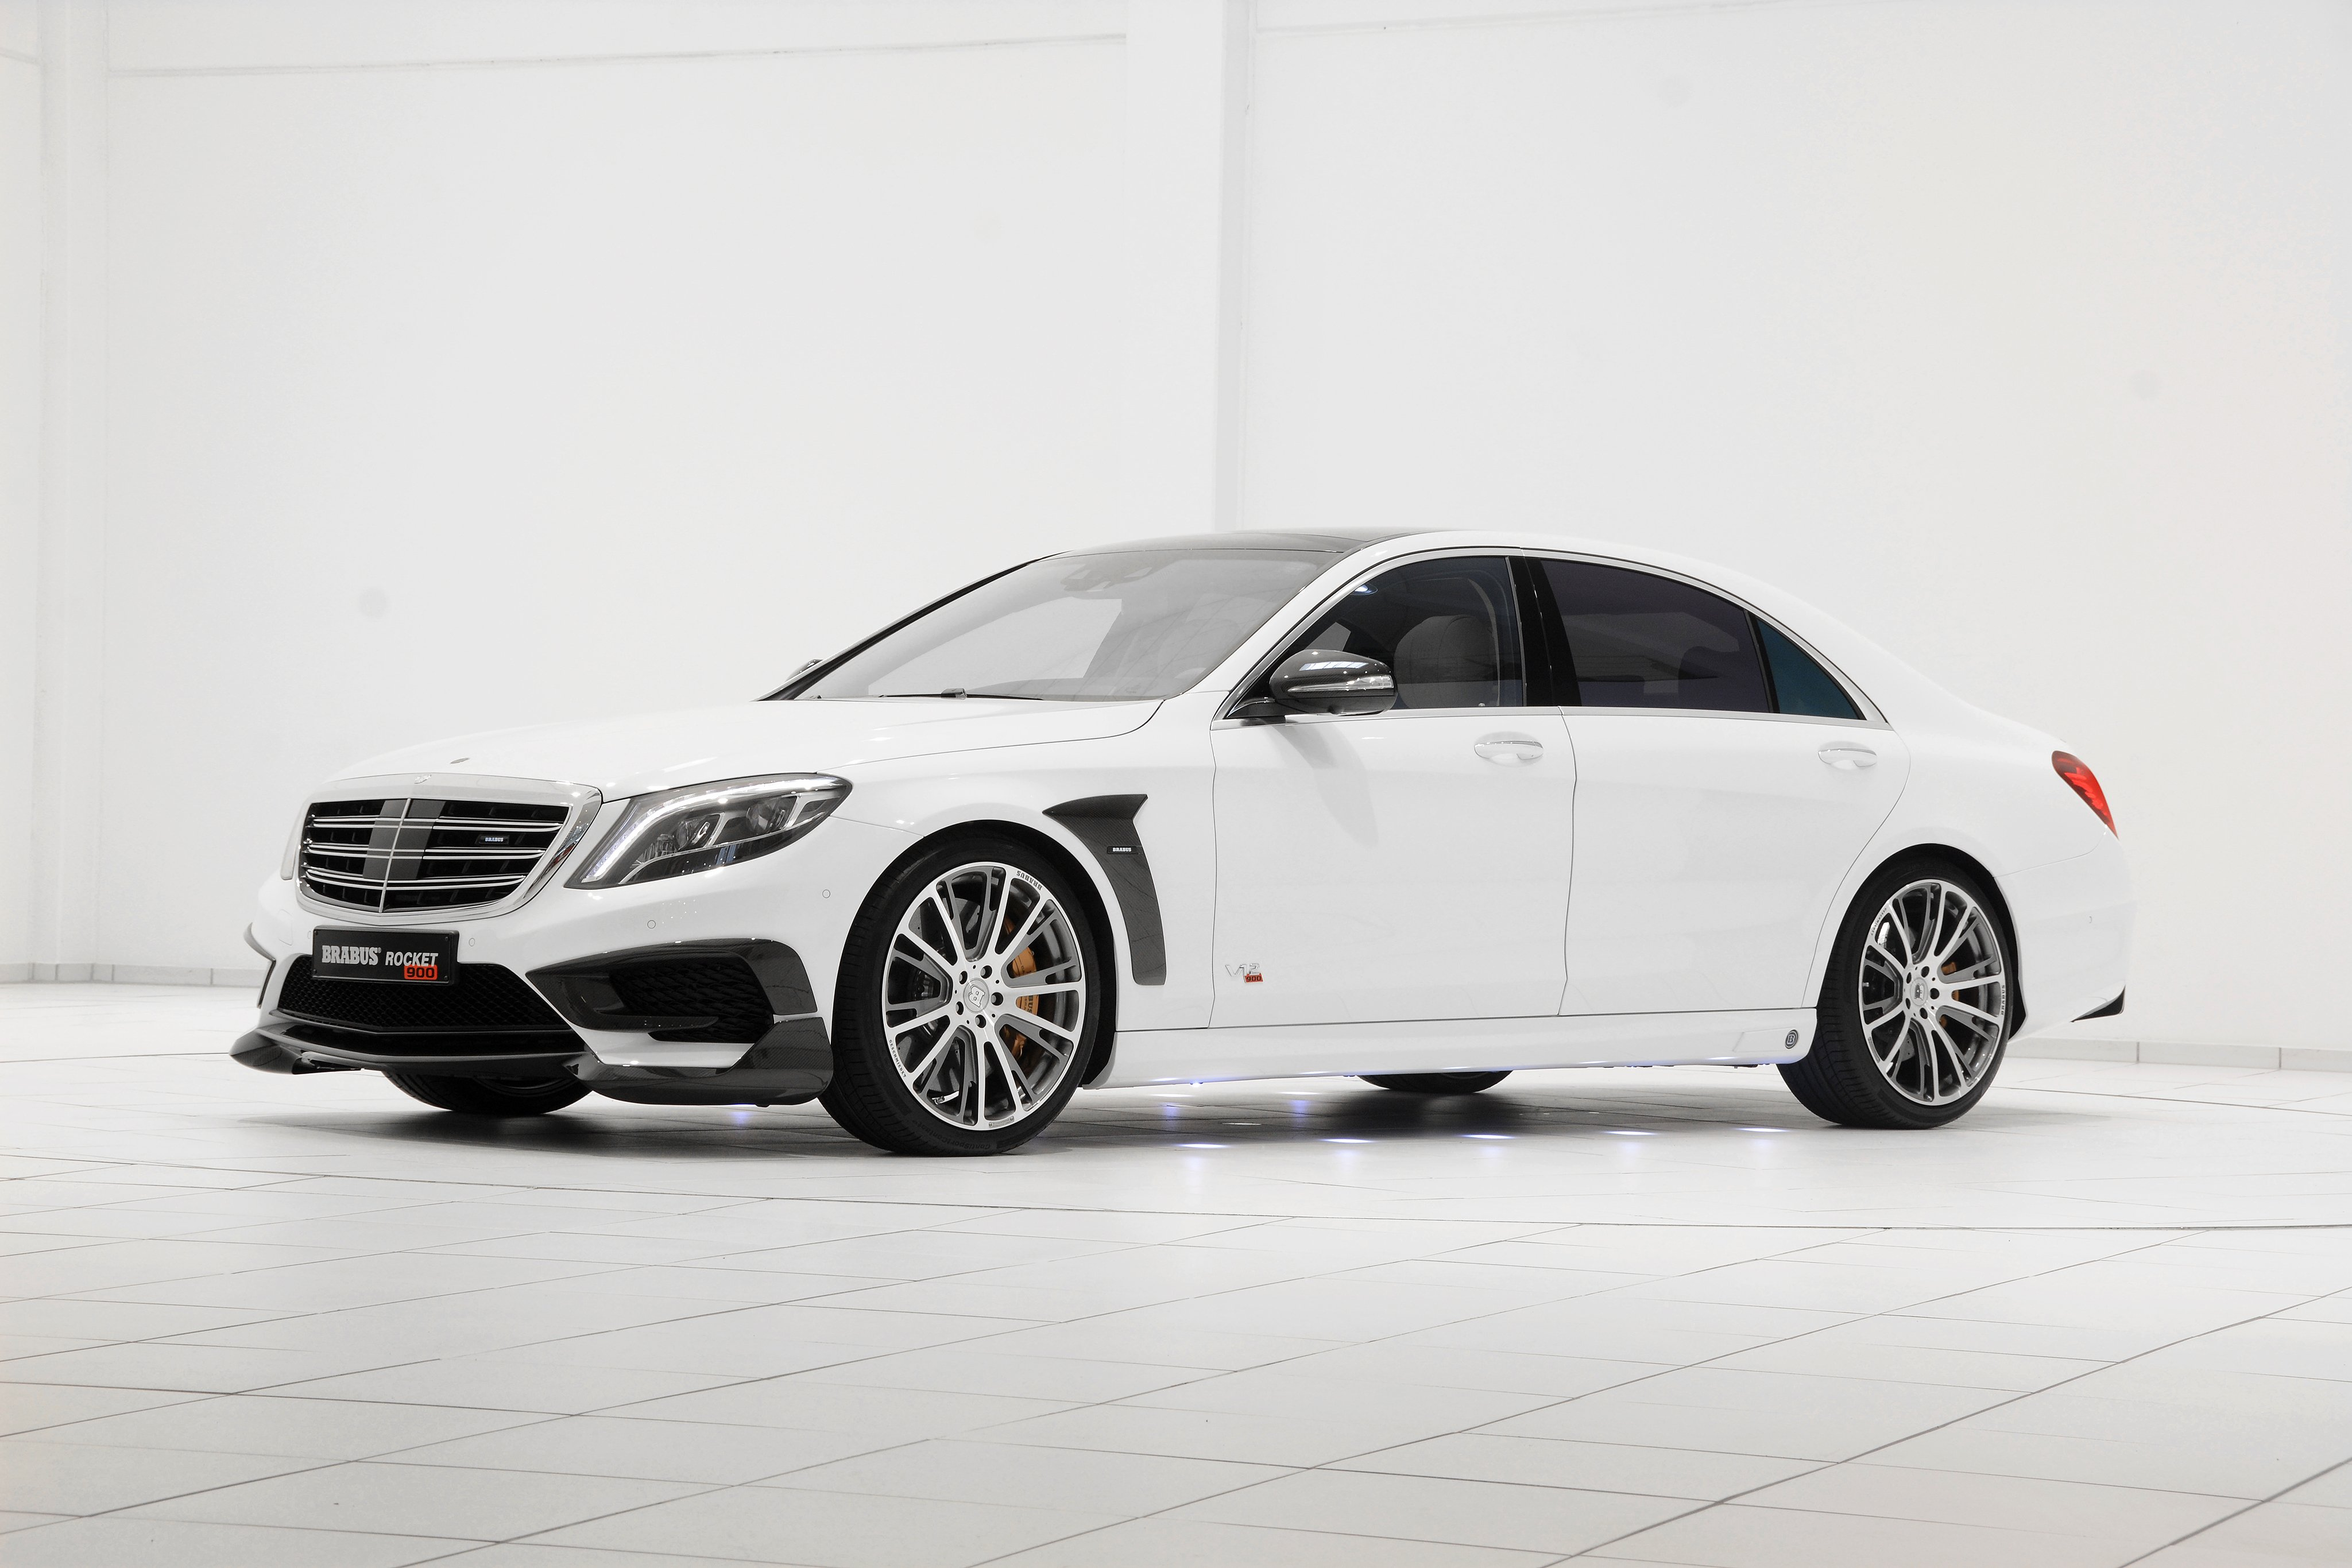 2015 brabus mercedes s65 amg rocket 900 dark cars wallpapers. Black Bedroom Furniture Sets. Home Design Ideas